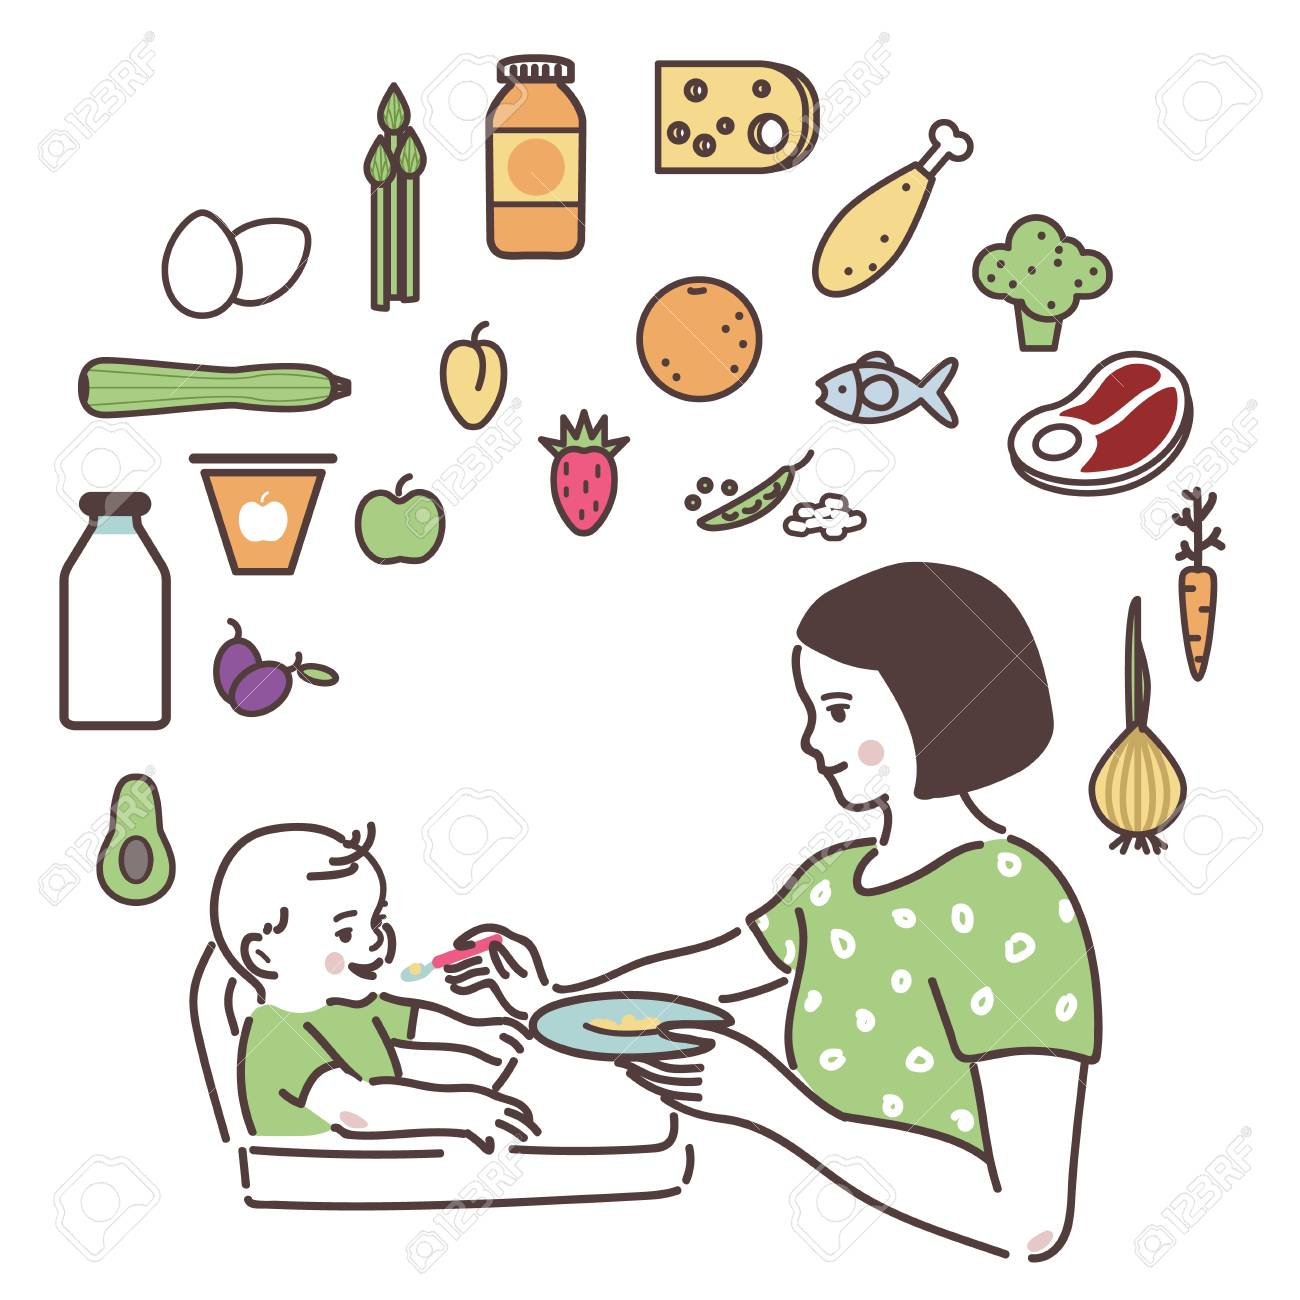 Mom is feeding up the baby with a spoon. - 100564204